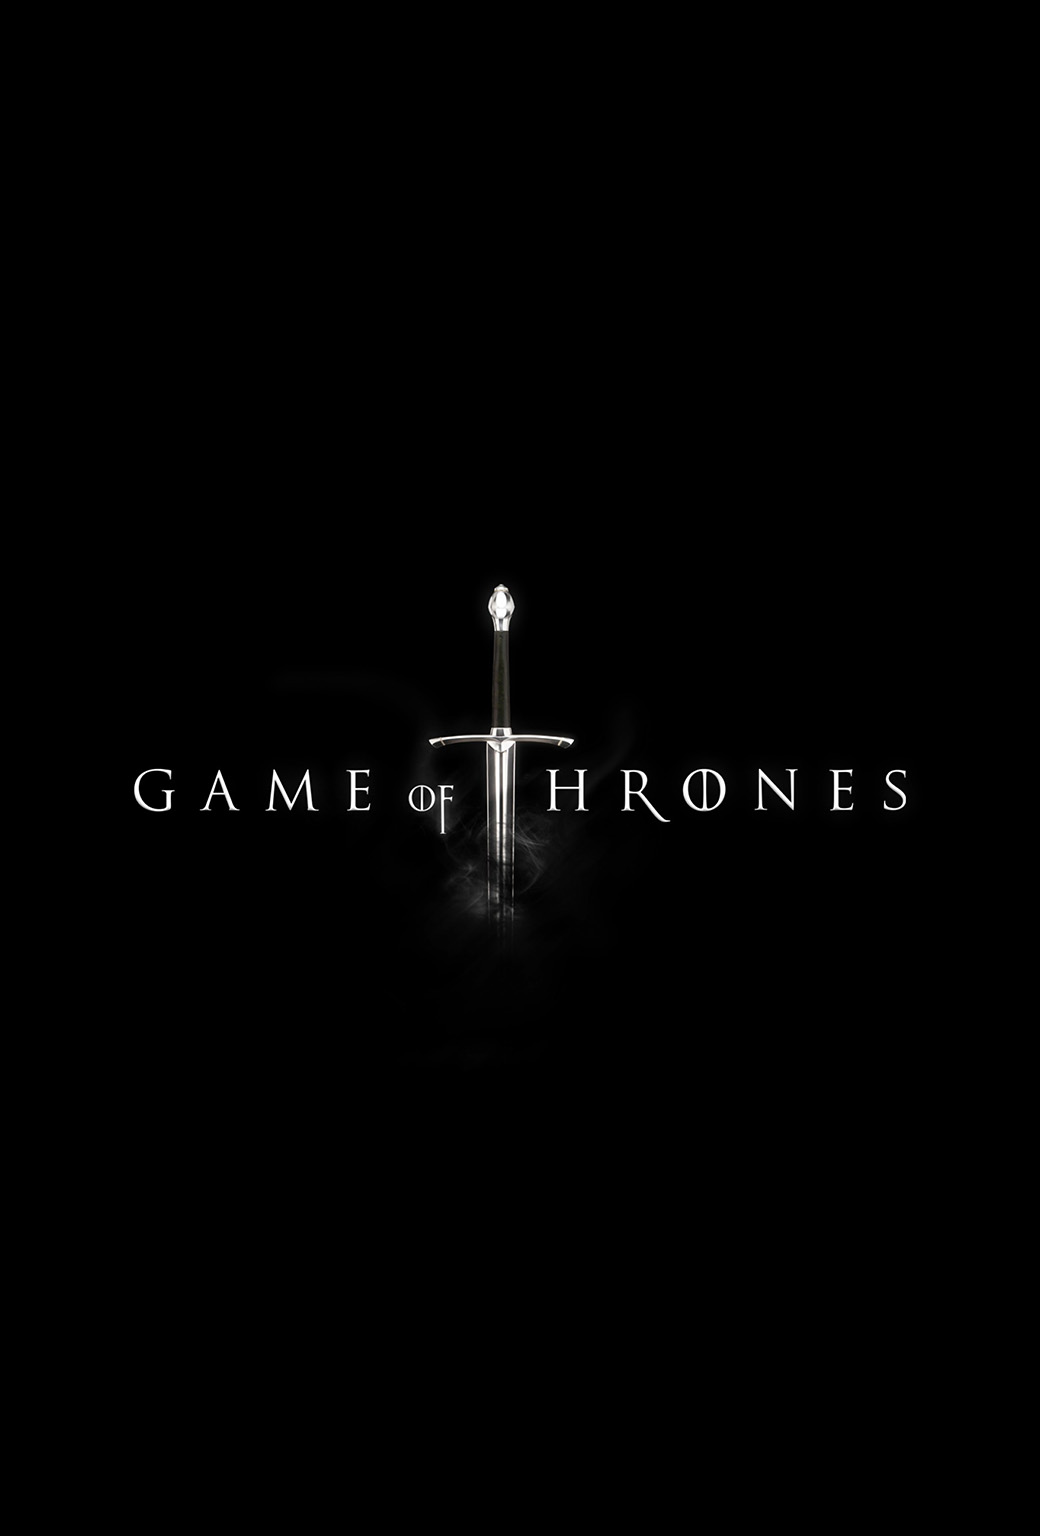 Iphone Parallax Wallpaper Game Of Thrones Wallpapers For Iphone And Ipad